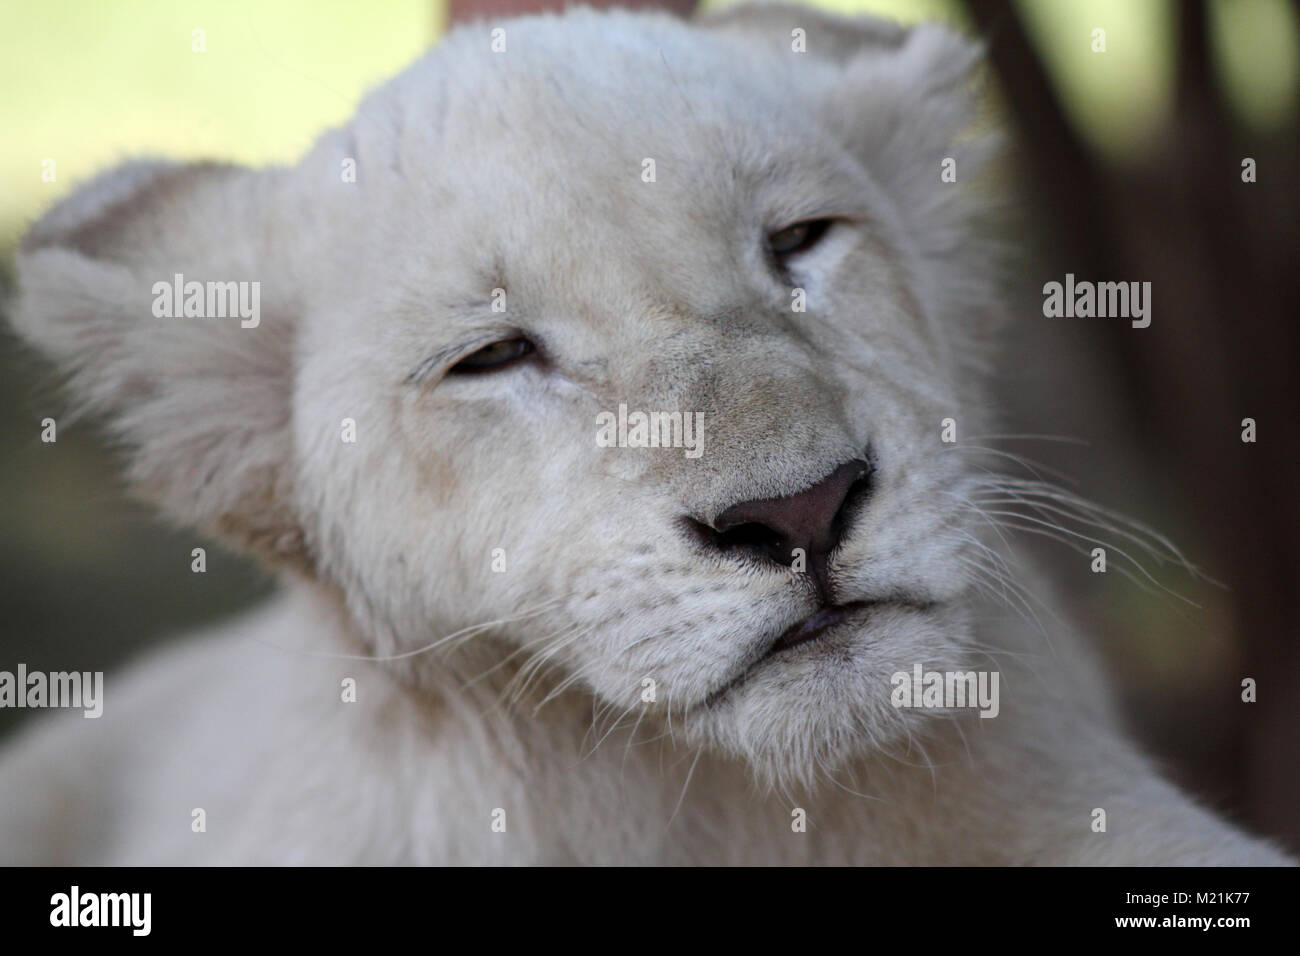 White lion puppy or cub with green eyes close up - Stock Image